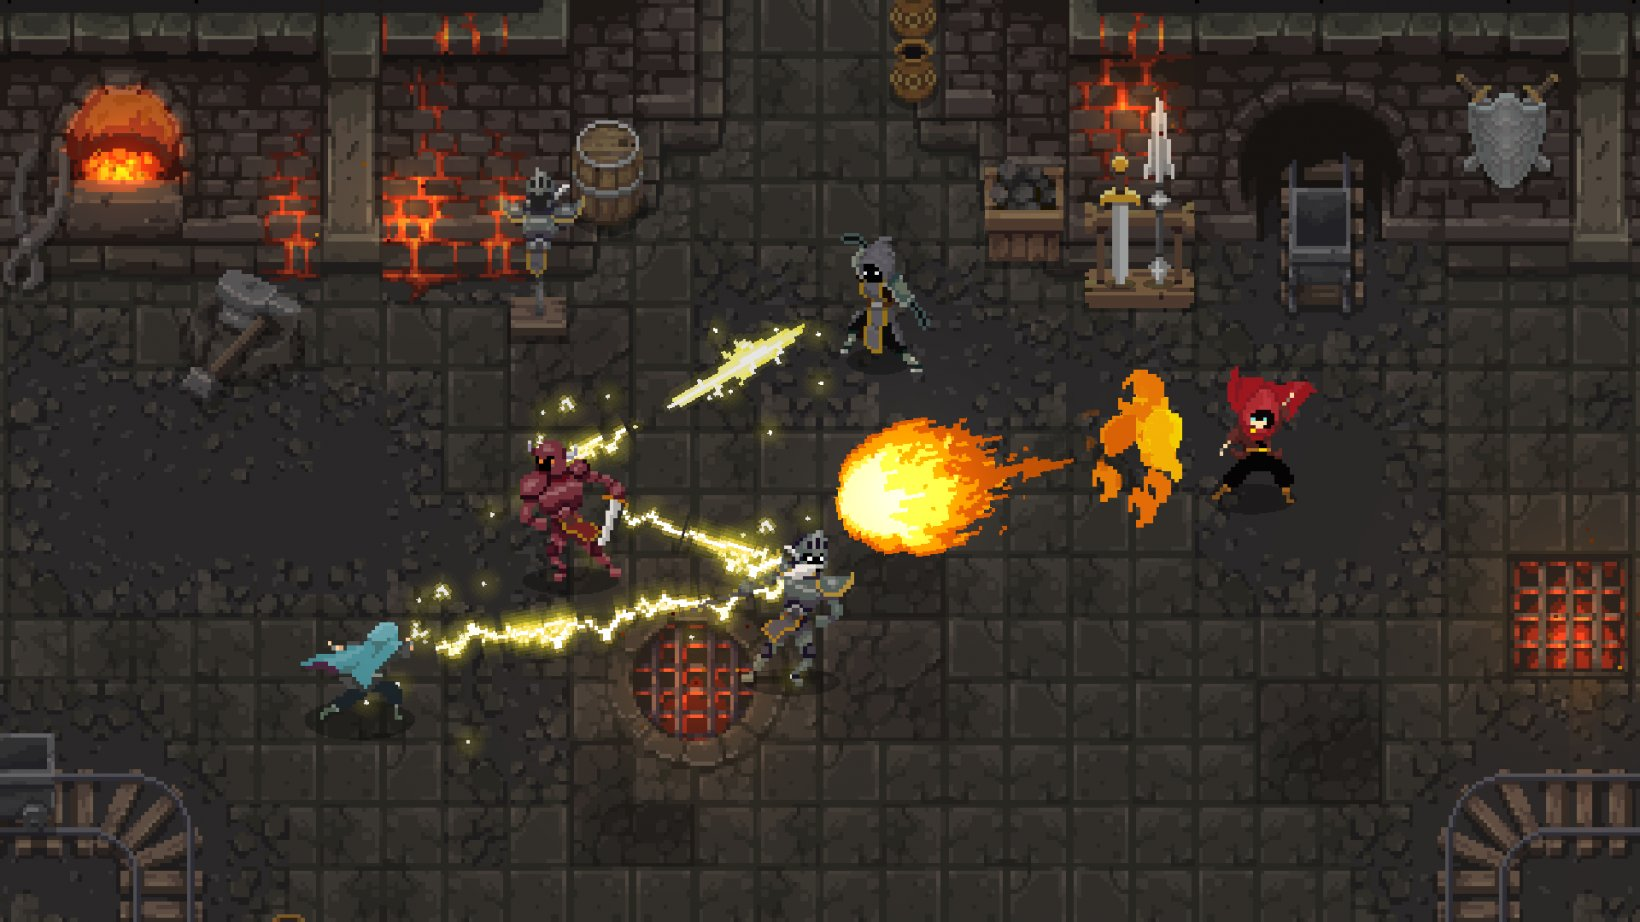 Wield the elements in fast-paced magical combat when Wizard of Legend releases on Switch in 2018